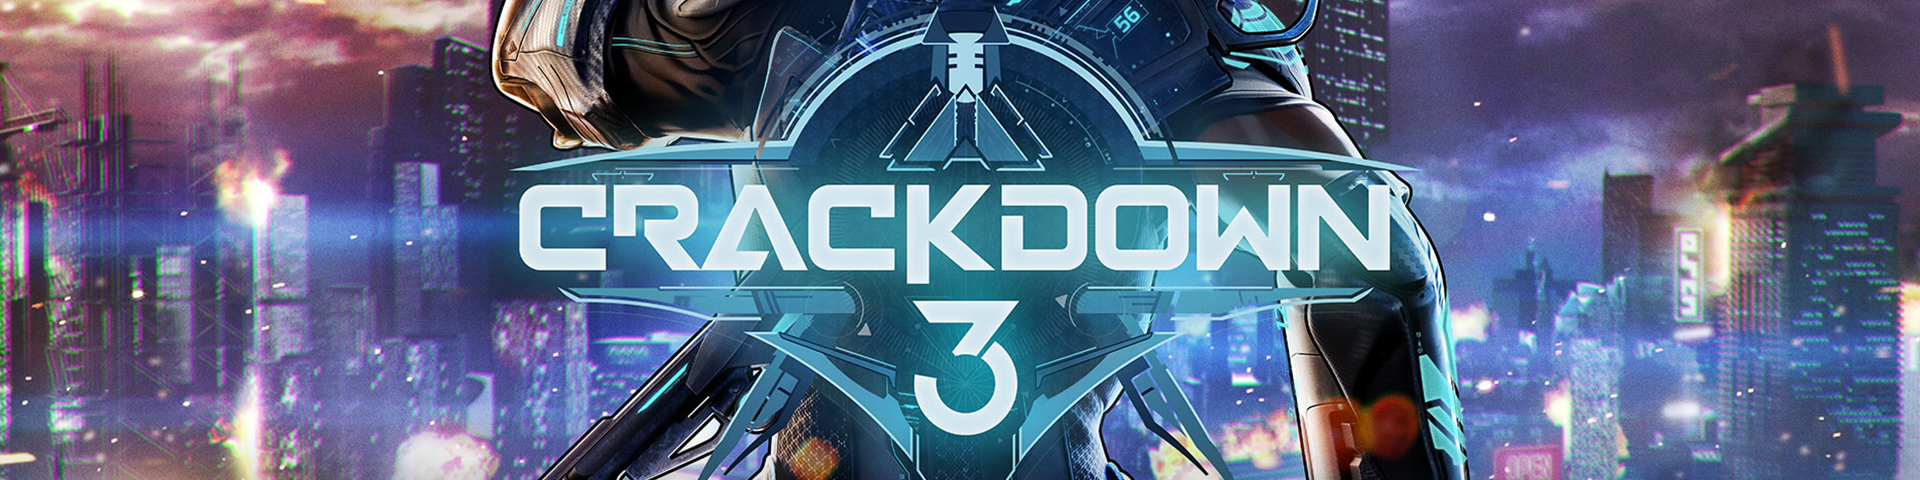 Crackdown 3 Review Header.png